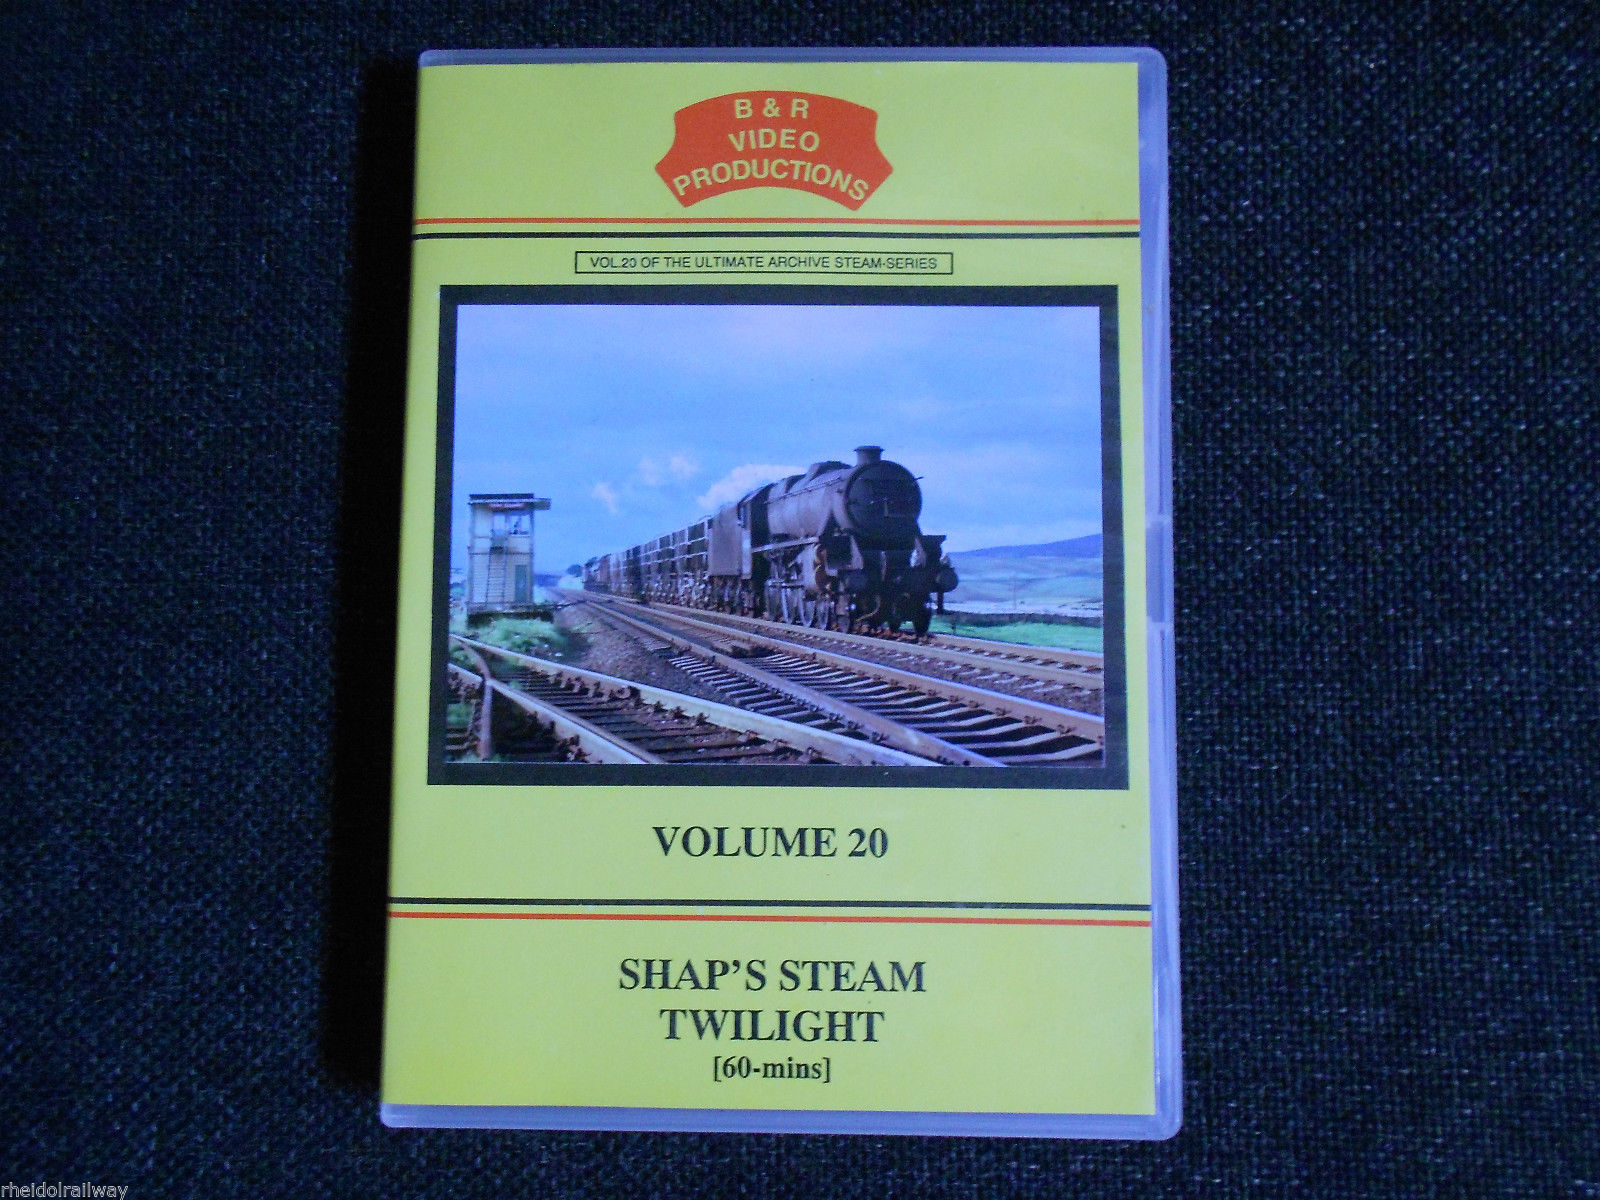 Shap, Crewe, Shap's Steam Twilight, B & R Volume 20 DVD